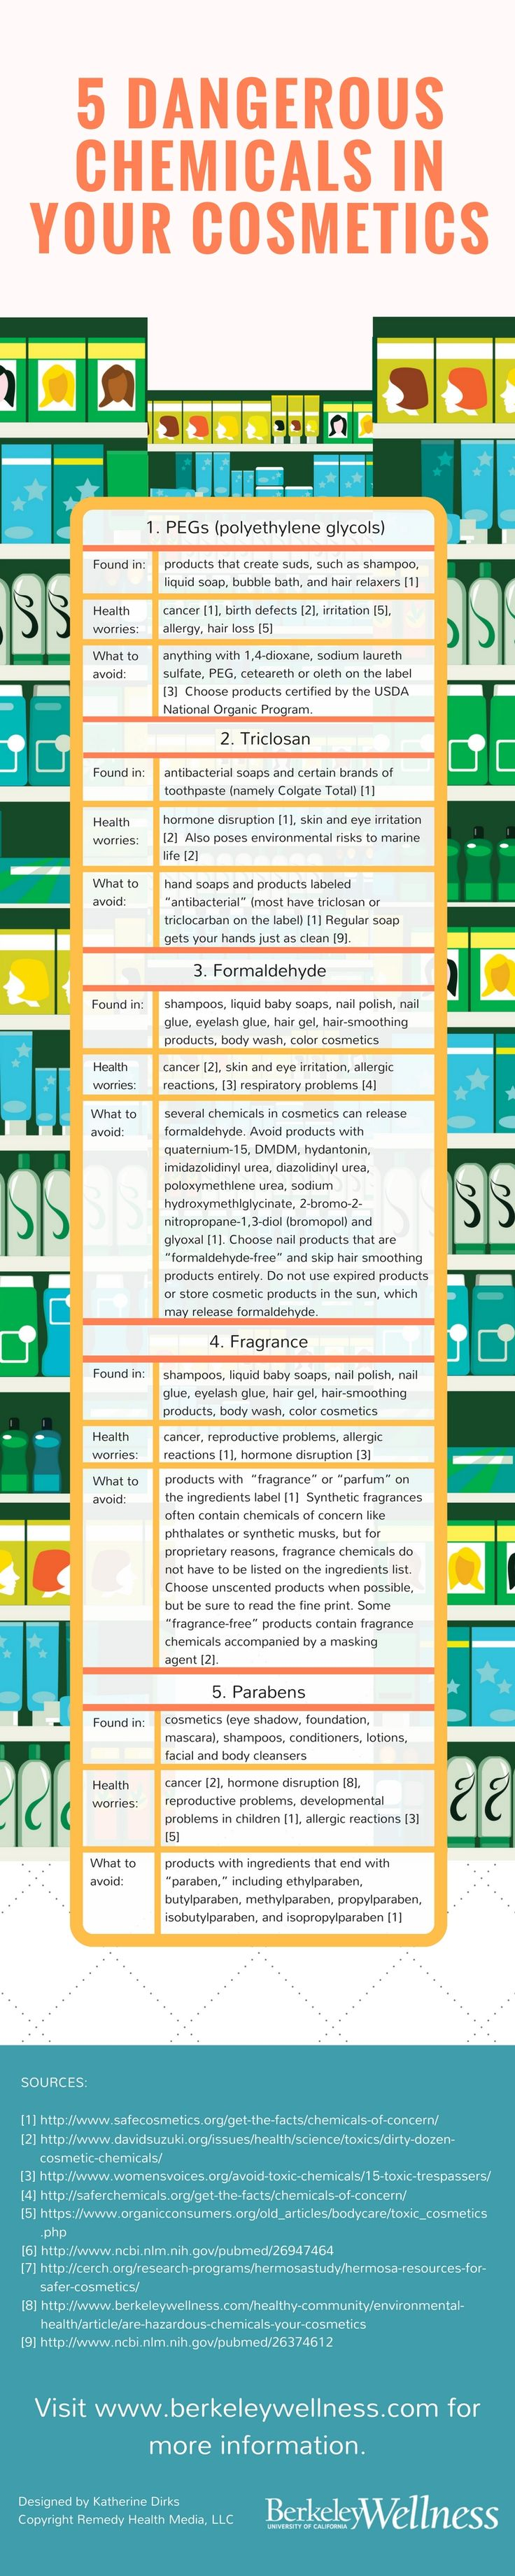 5 Dangerous Chemicals in Cosmetics and Personal Care Products | Berkeley Wellness